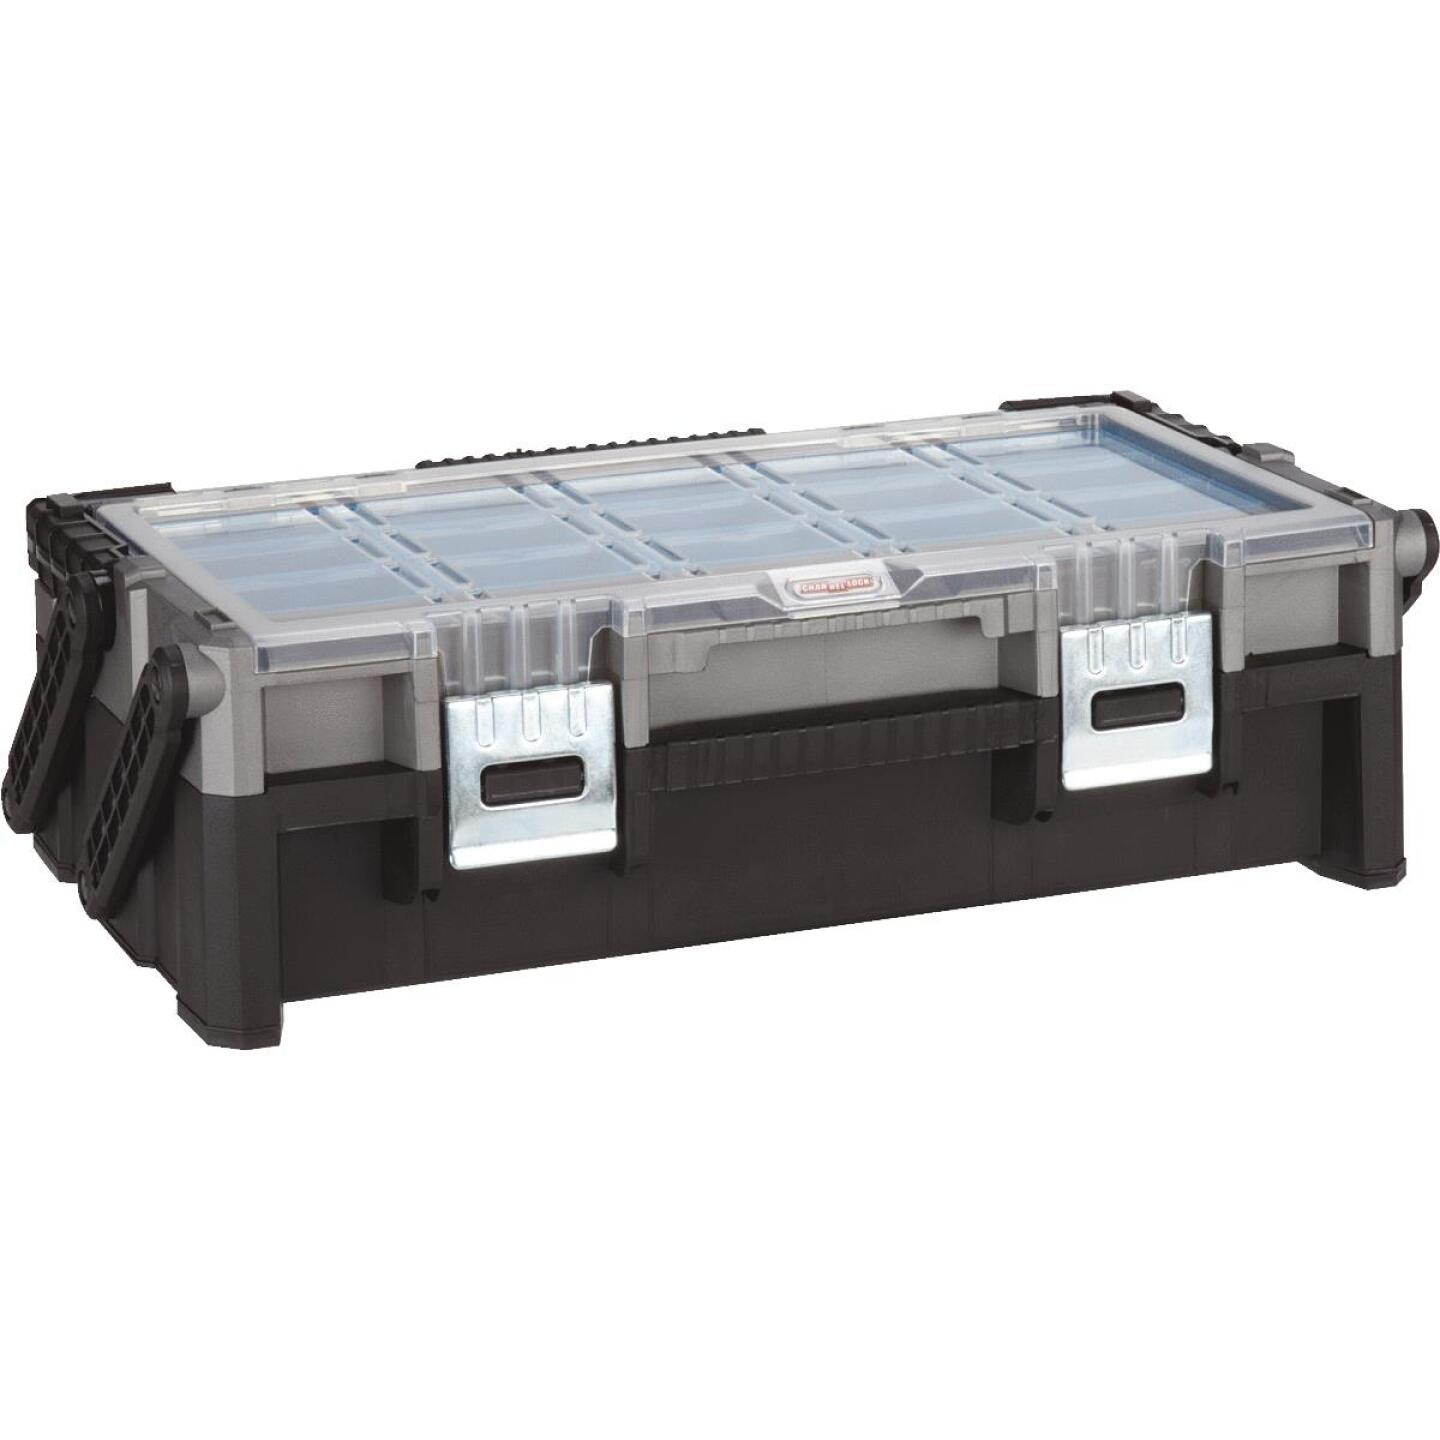 Channellock 22.5 In. Cantilever Parts Organizer Storage Box Image 8